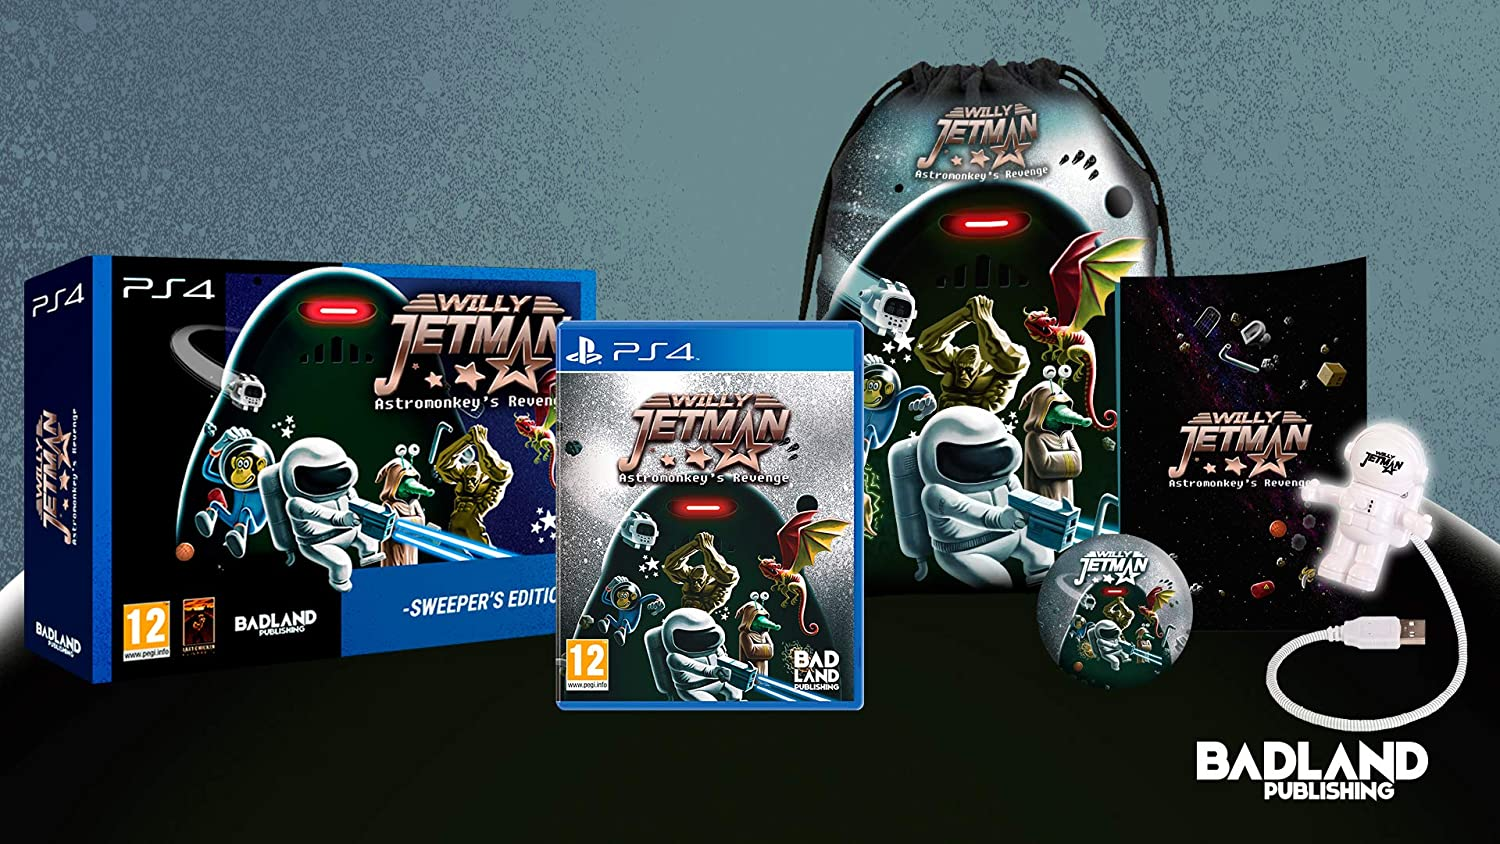 List Ultra-Cheap Deals price Willy Jetman: Astromonkey's Revenge Sweeper - Edition PS4